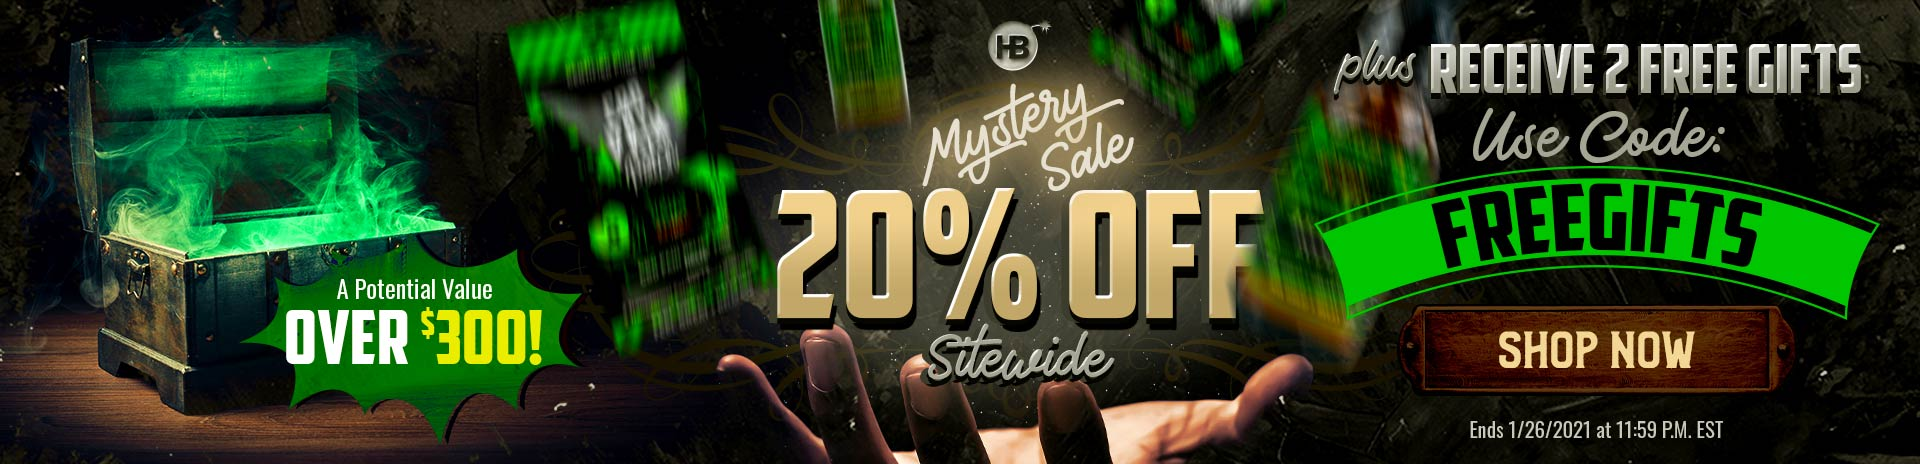 hemp bombs 20% off sale and 2 free gifts banner